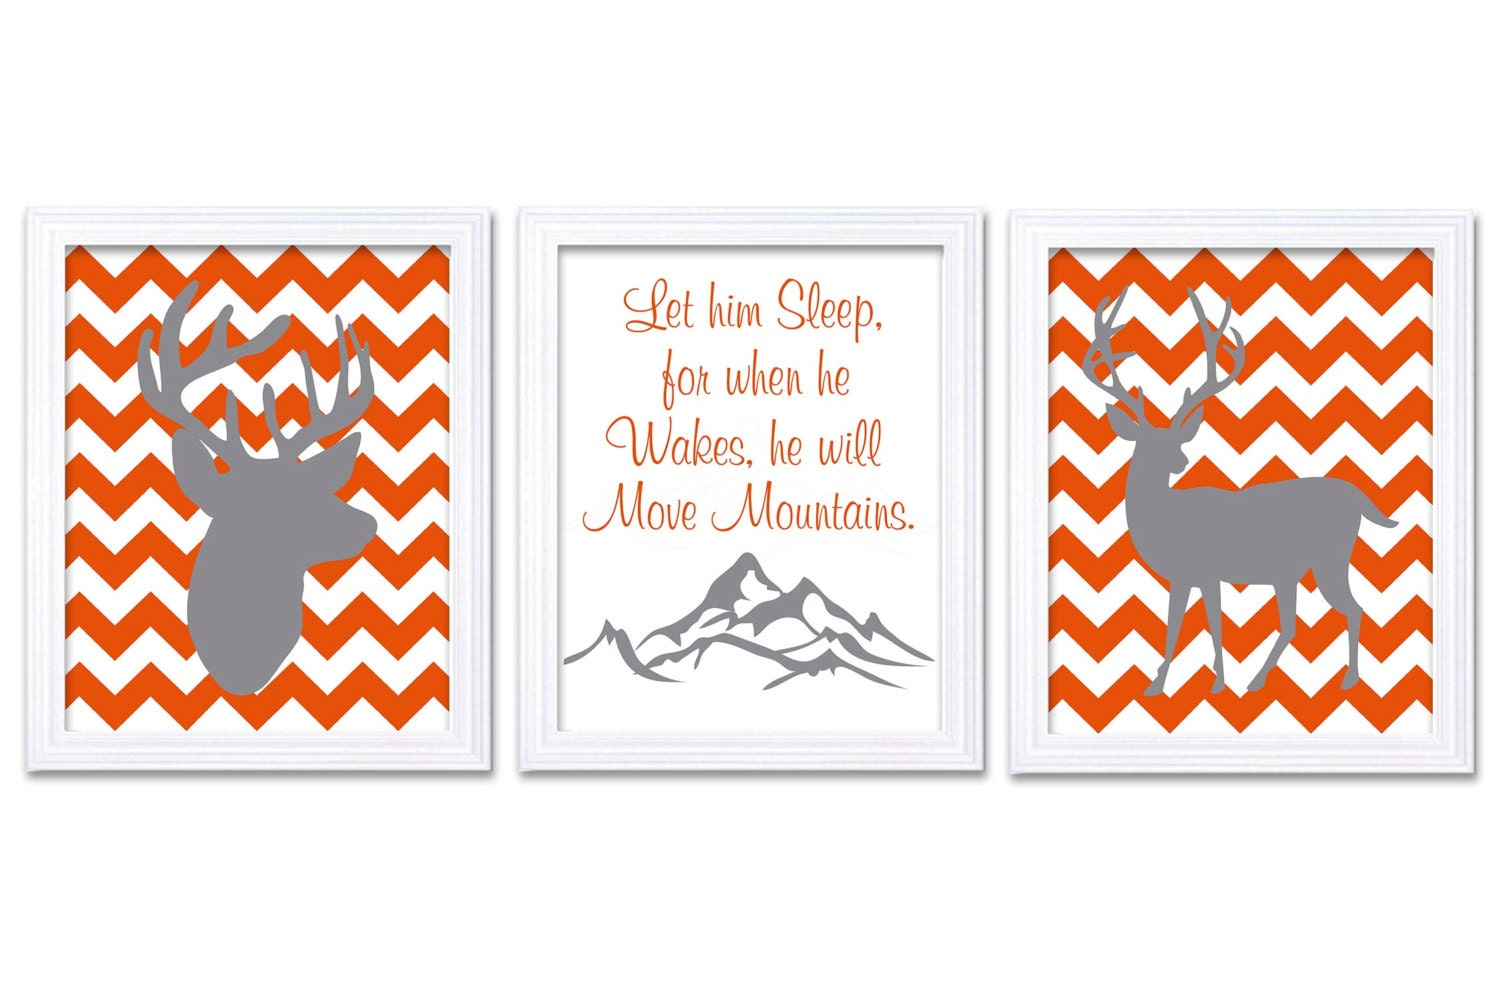 Deer Nursery Art Deer Head Prints Set of 3 He Will Move Mountains Orange Grey Chevron Baby Wall Deco